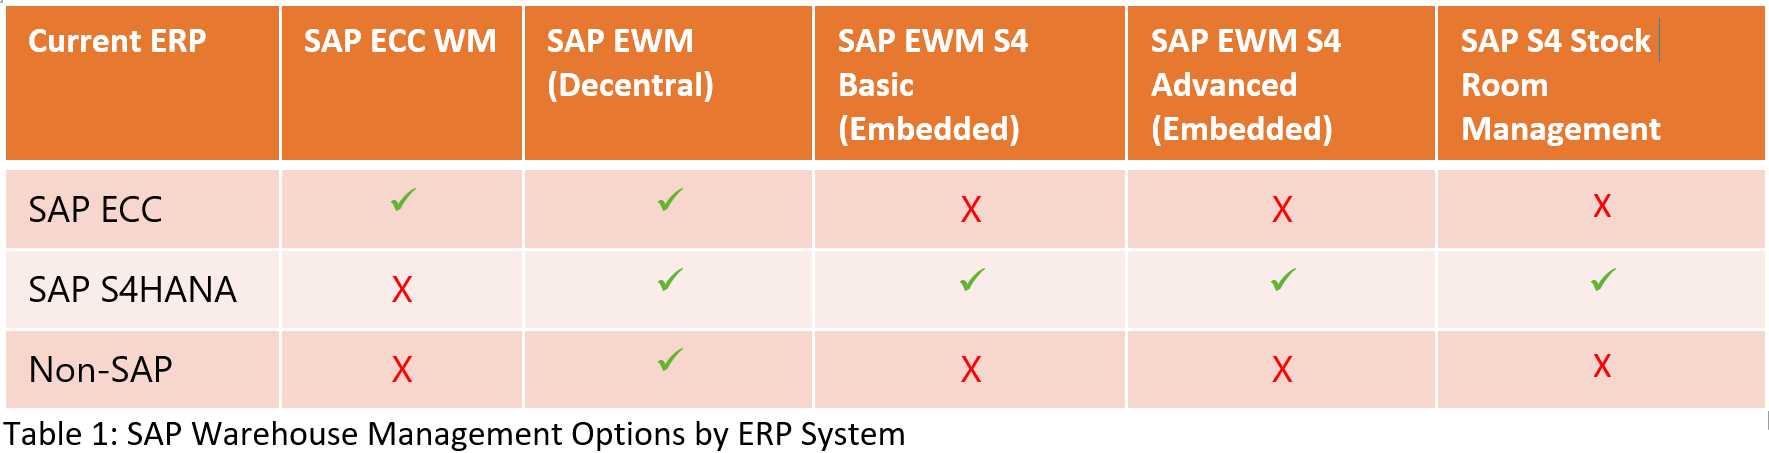 s4HANA decision matrix